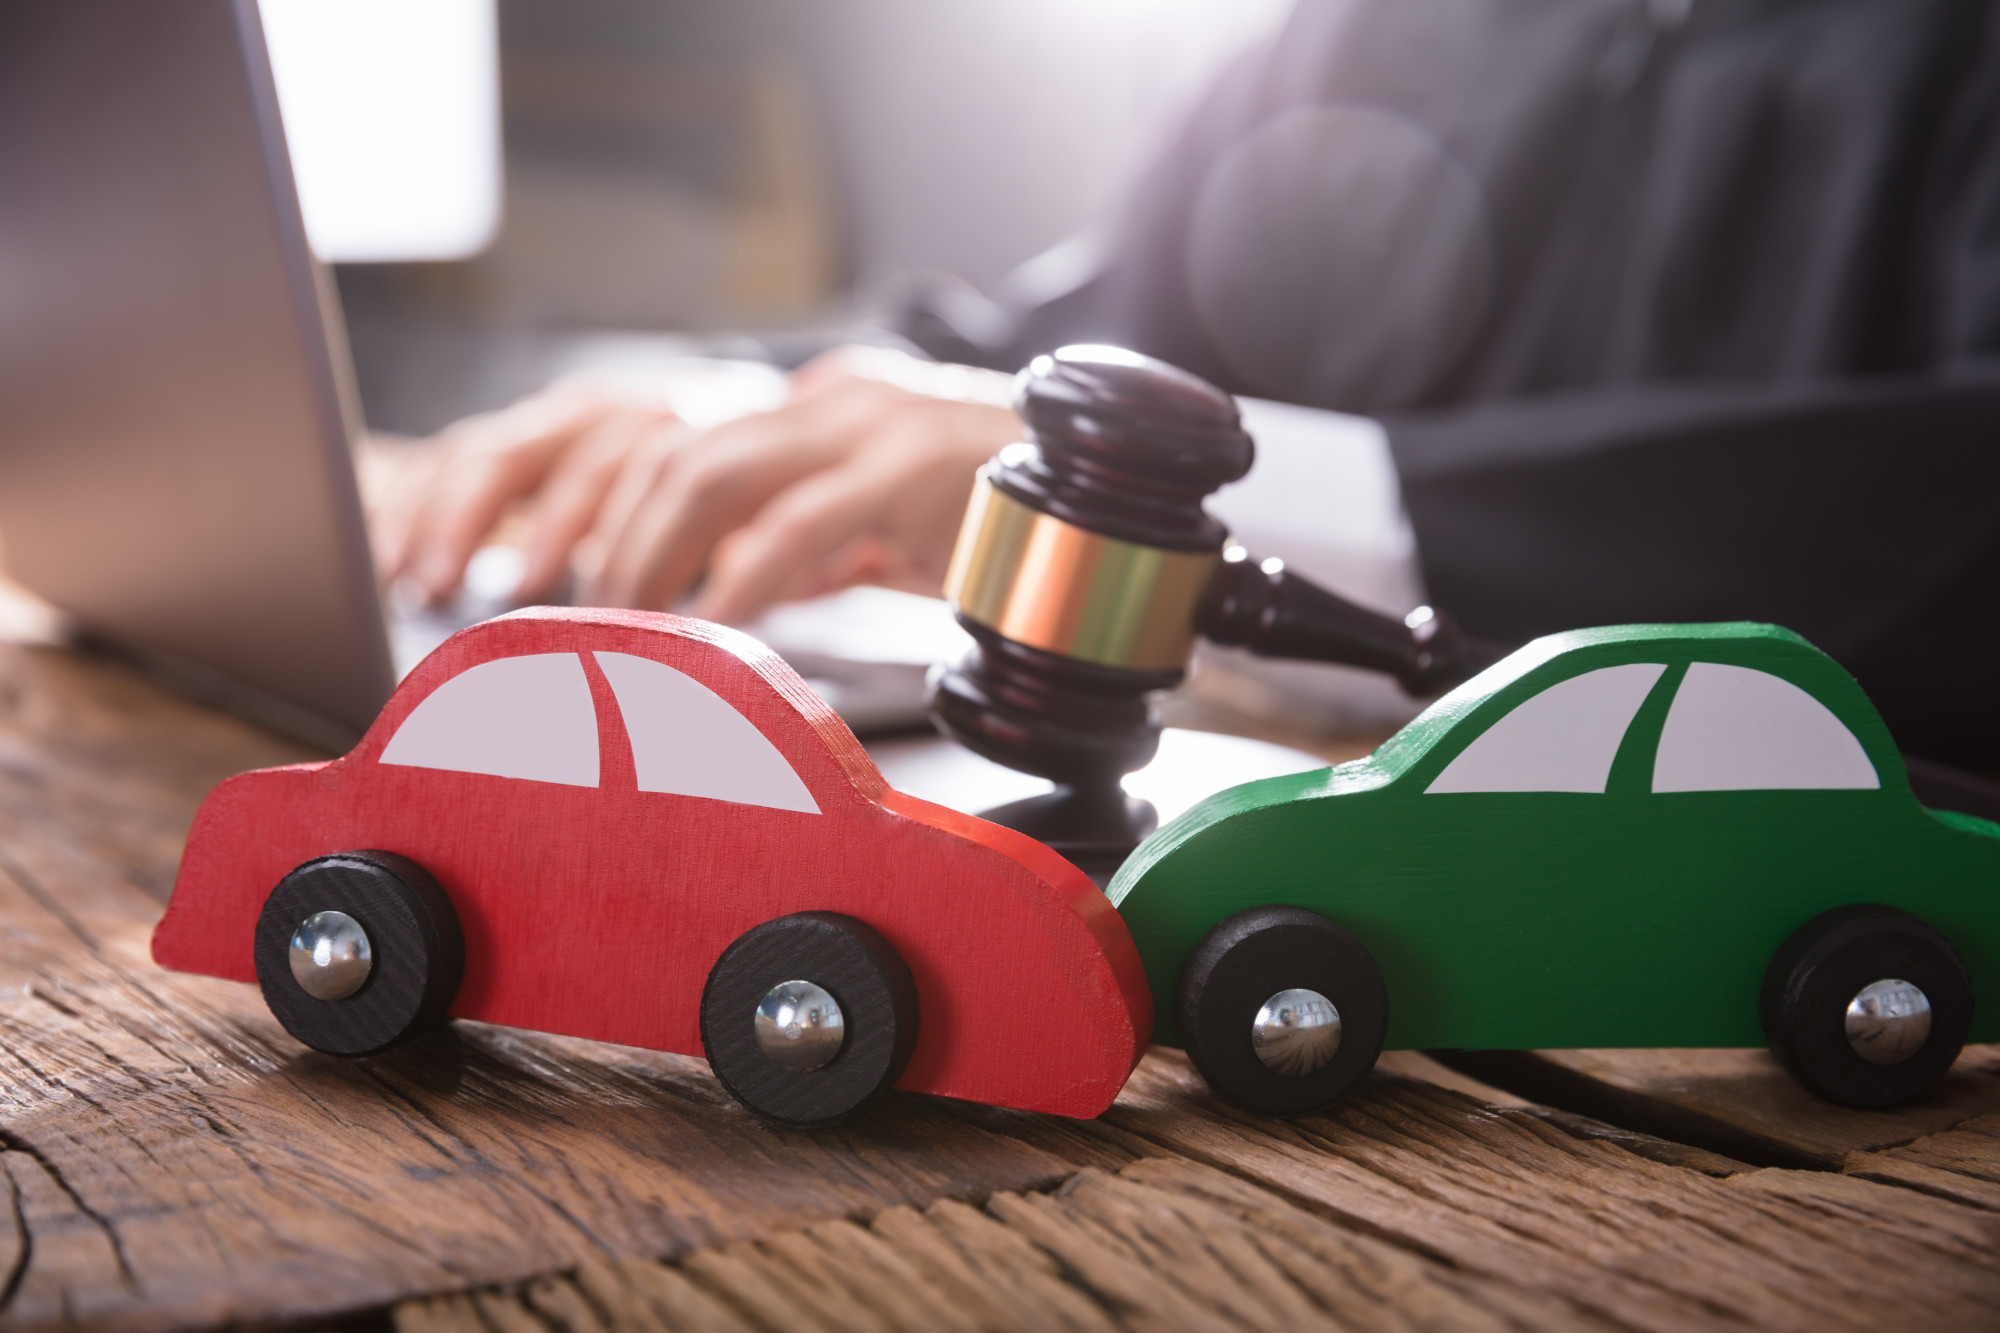 toy cars and lawyer